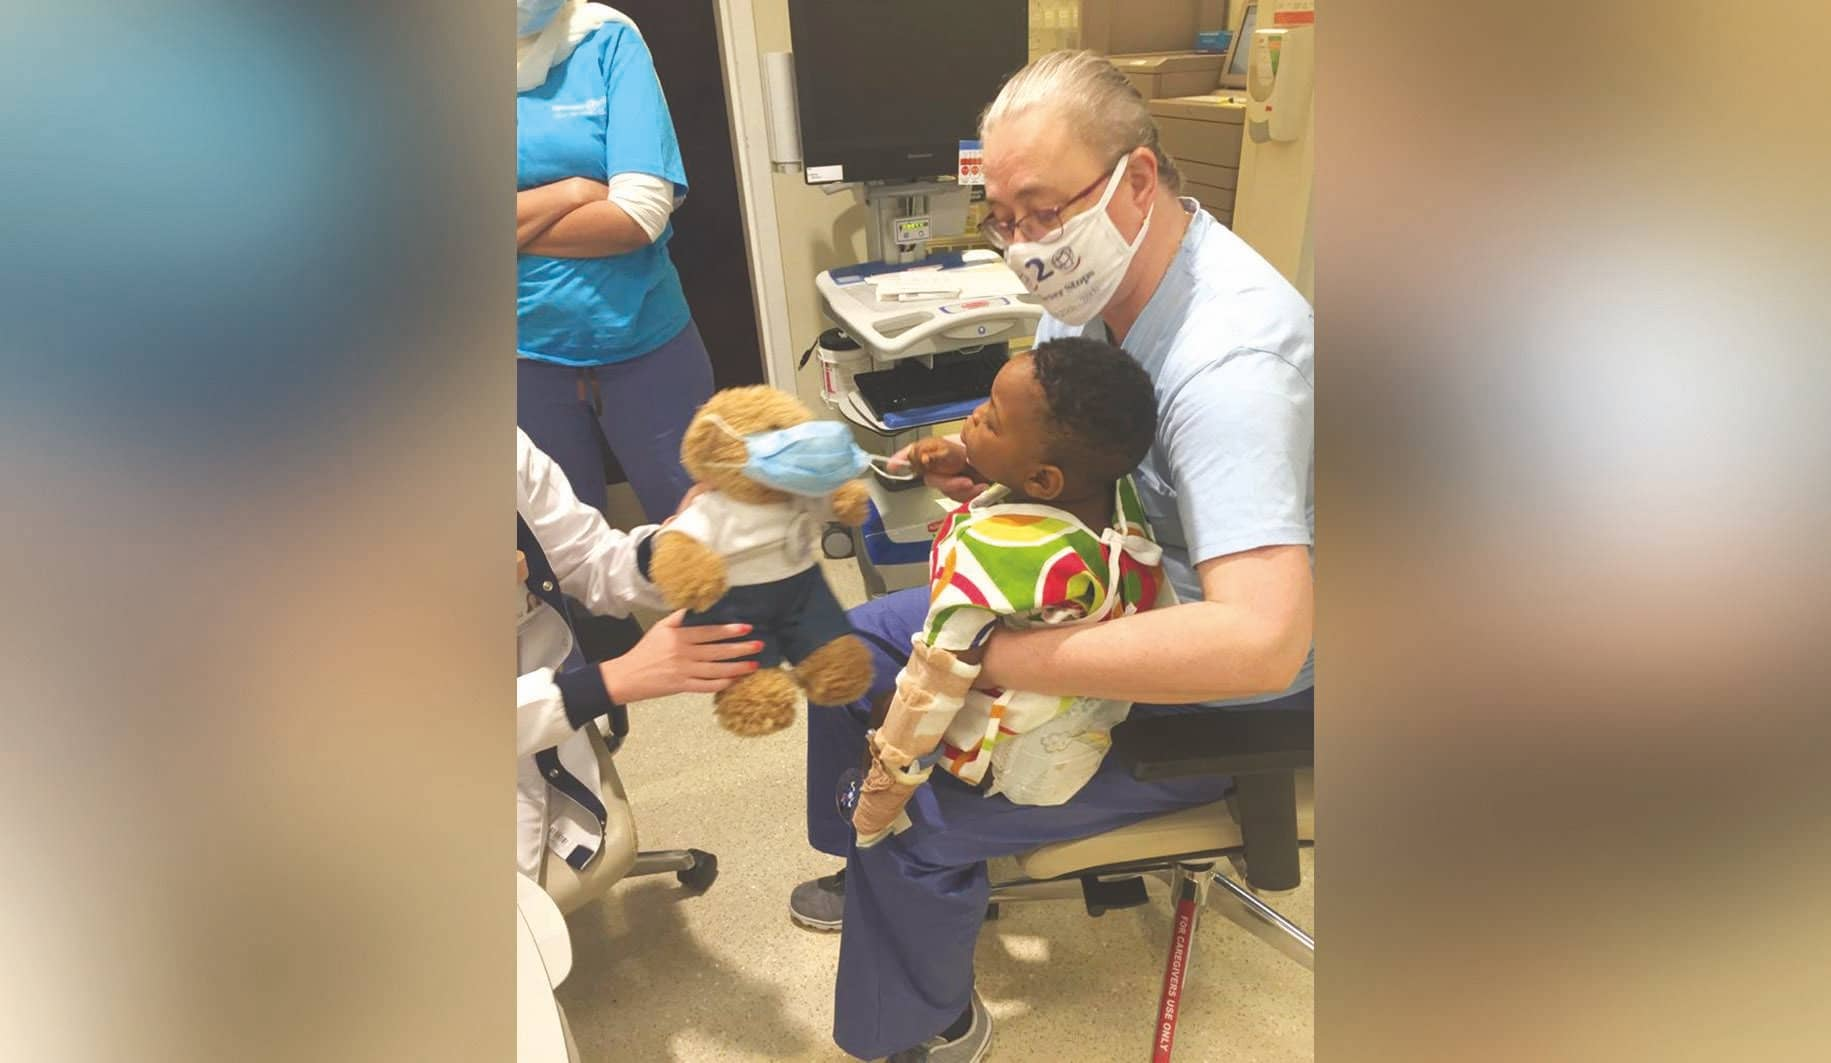 Operation Smile Uae Provides Life-Changing Surgery To 8 Kids